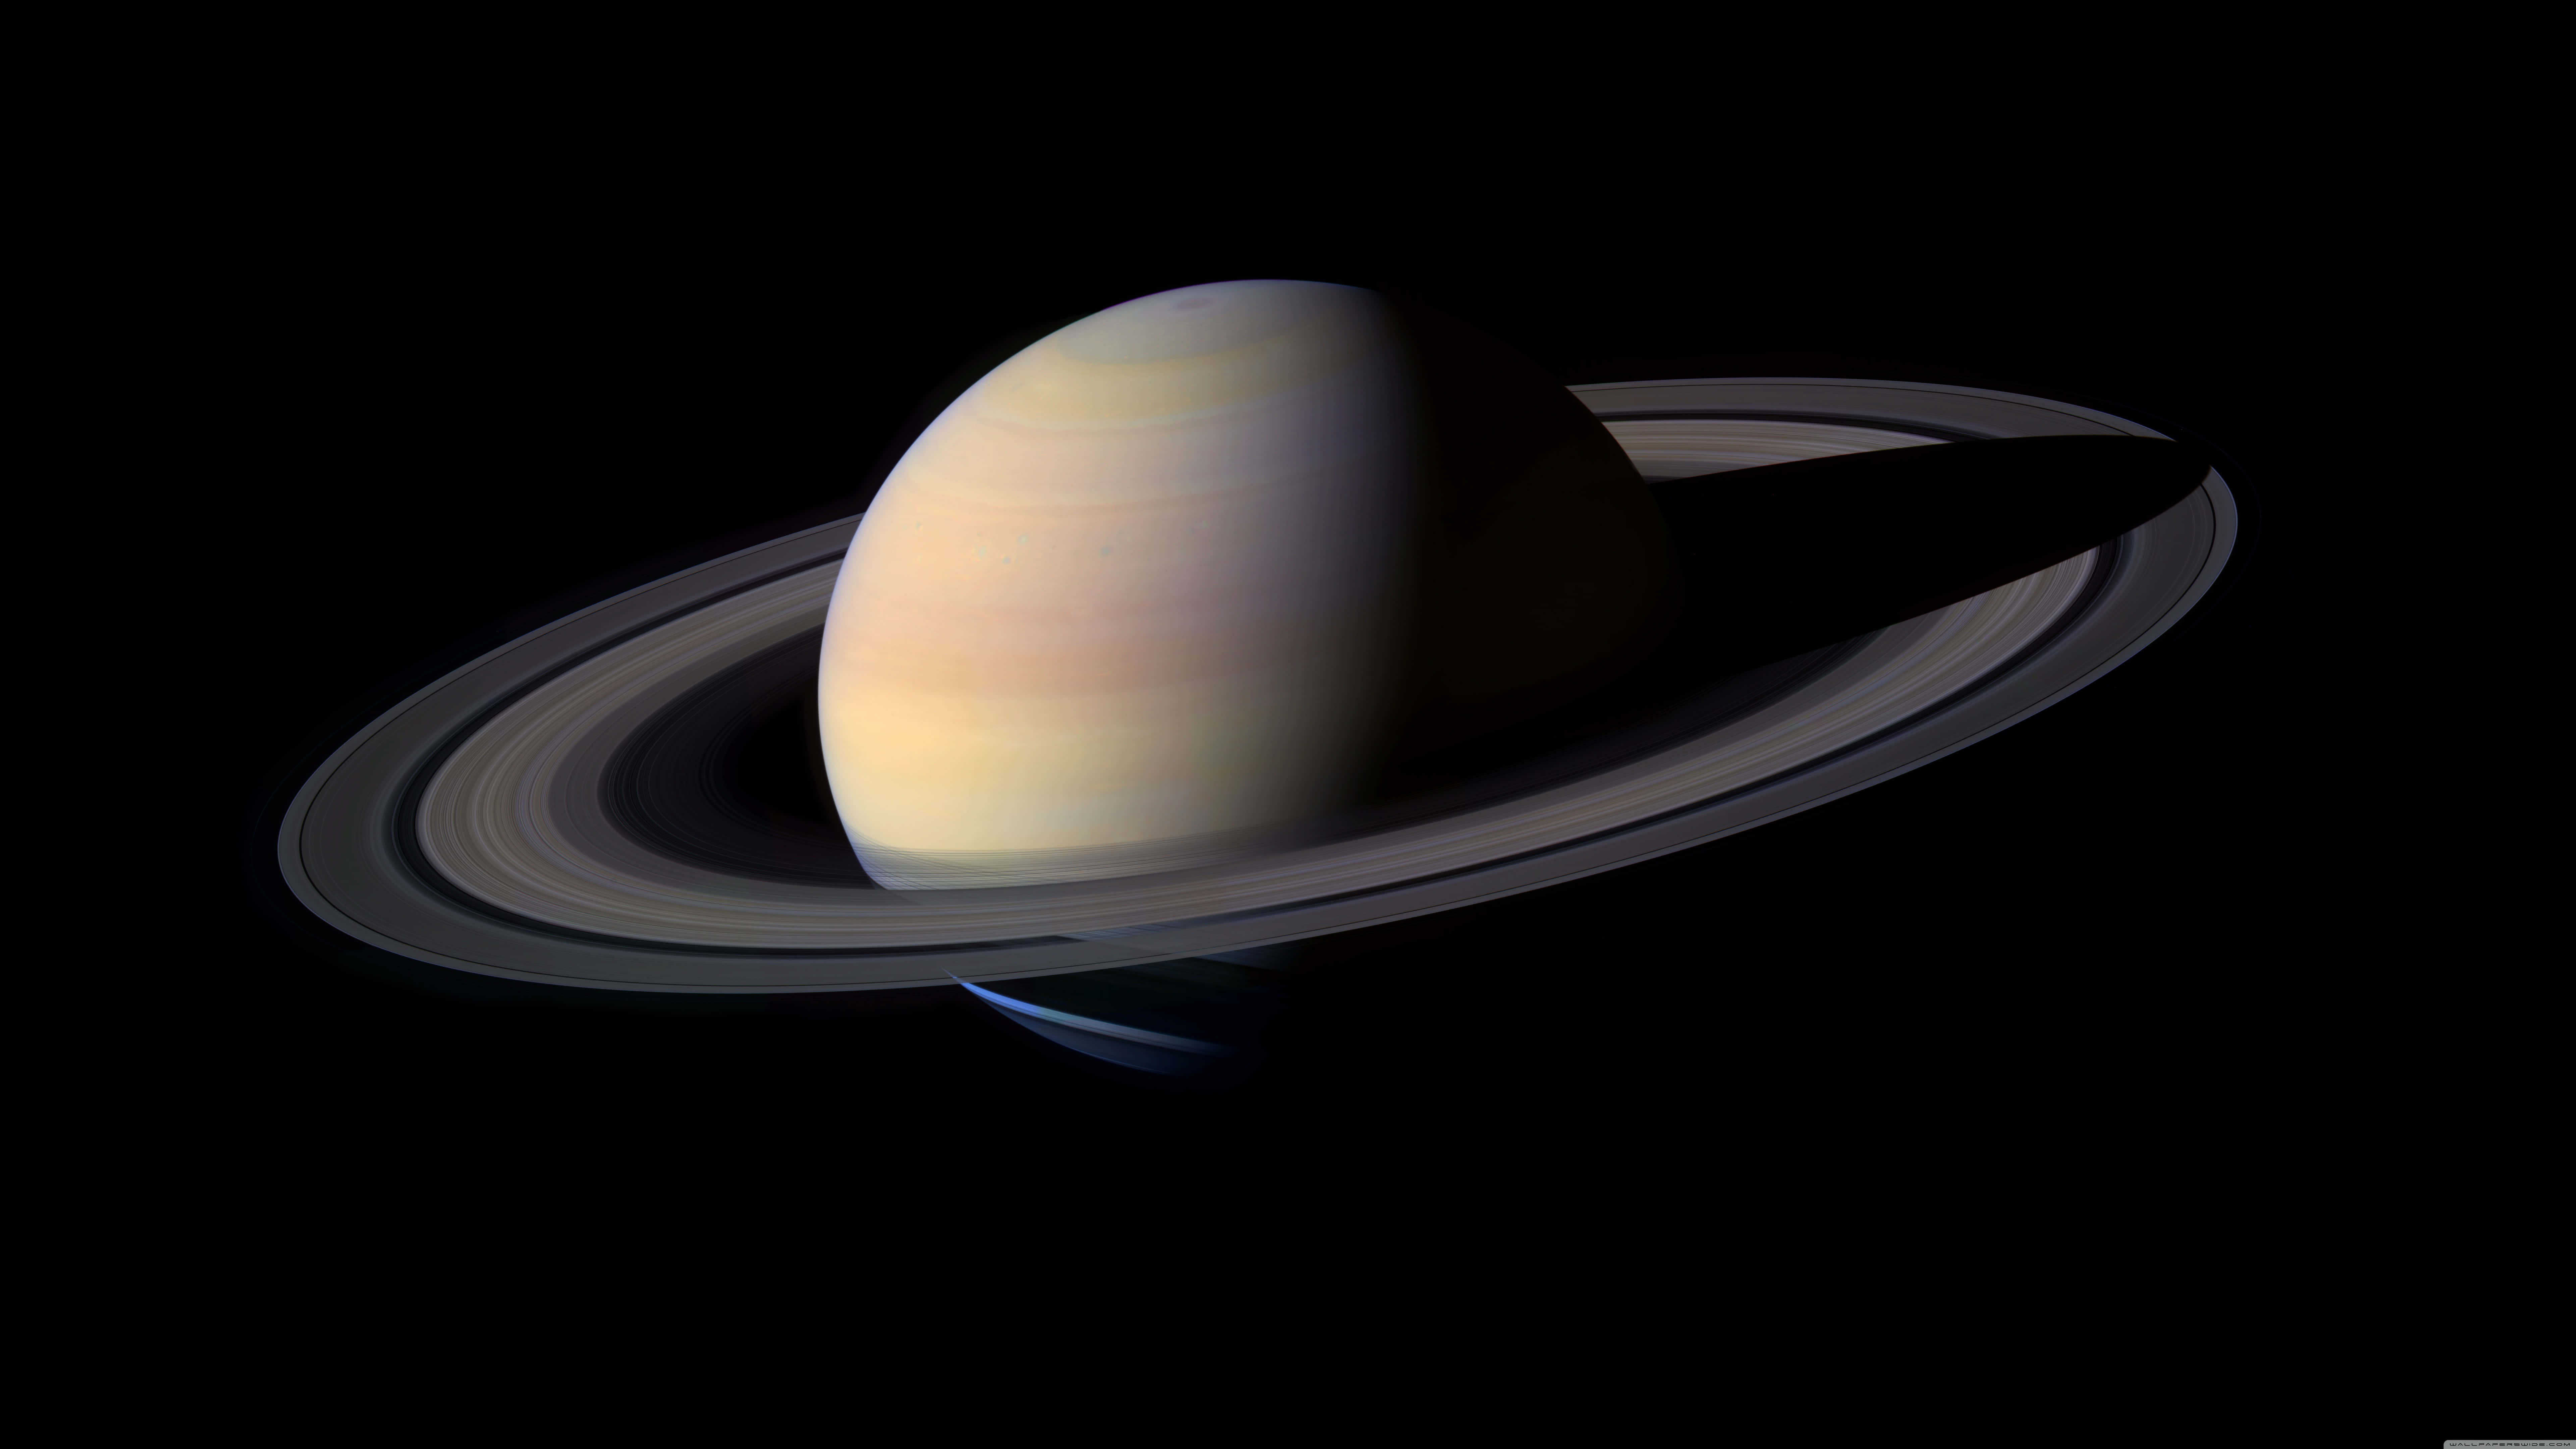 planet saturn uhd 8k wallpaper